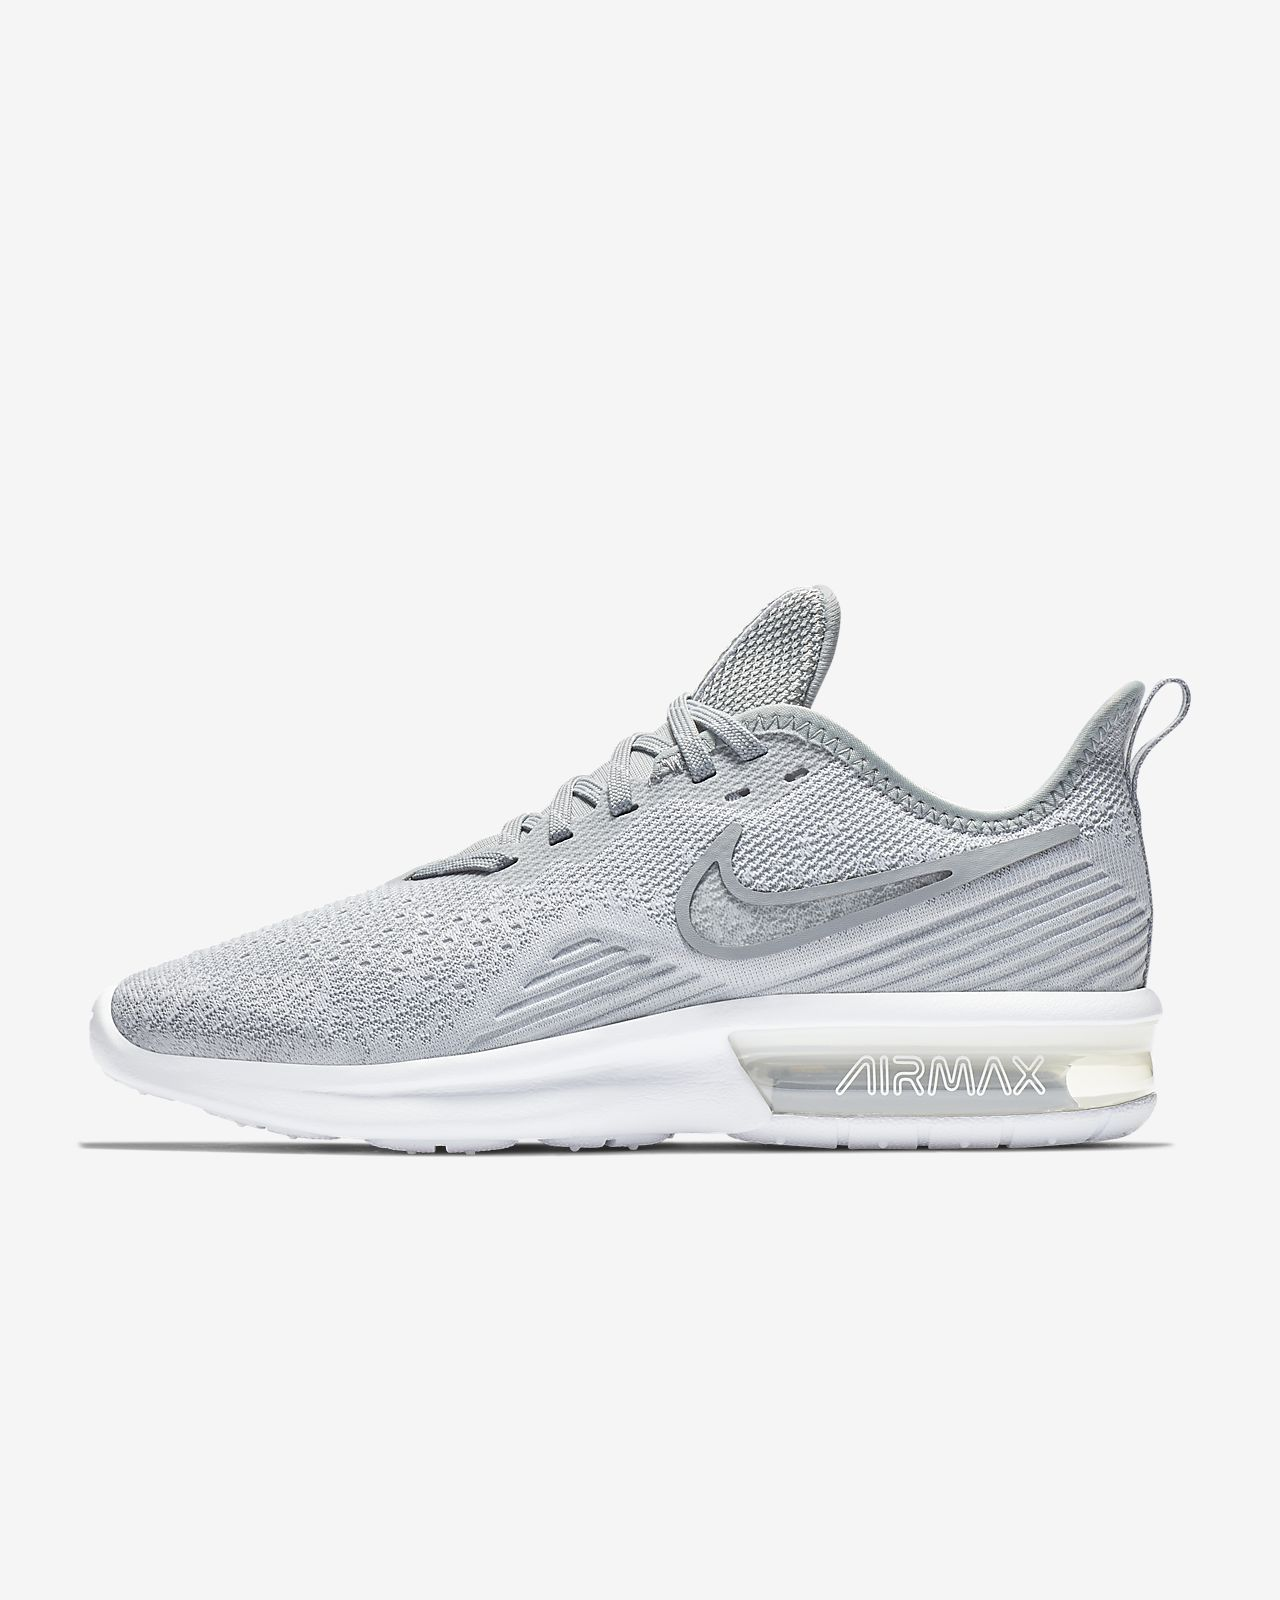 separation shoes 2af78 35546 ... Chaussure Nike Air Max Sequent 4 pour Femme